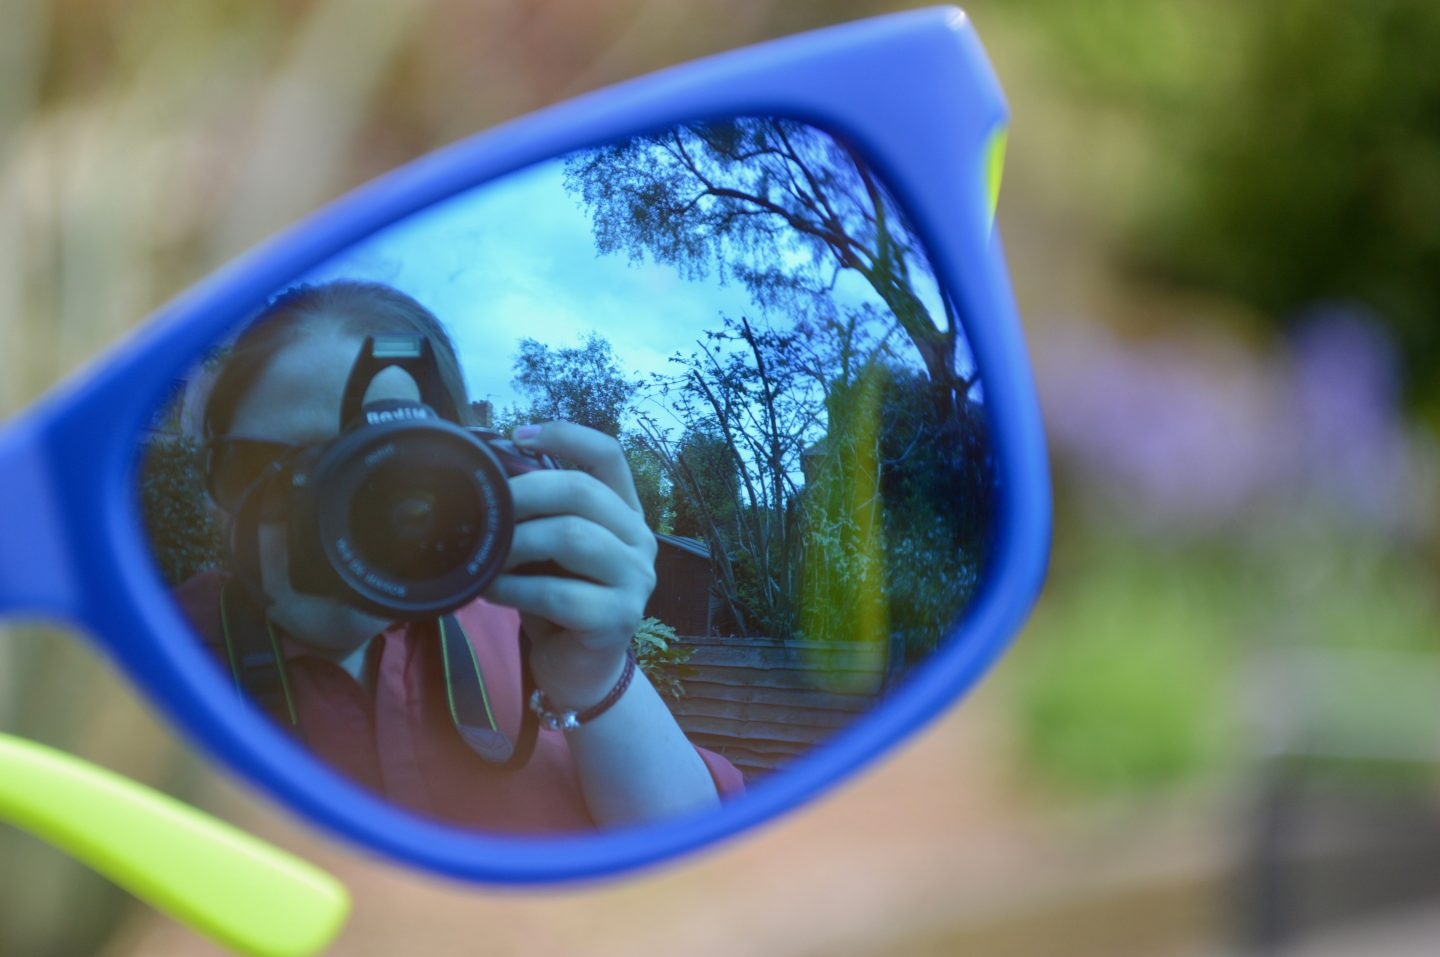 Getting Great Photos of Your Children This Summer – Tips from the Pros